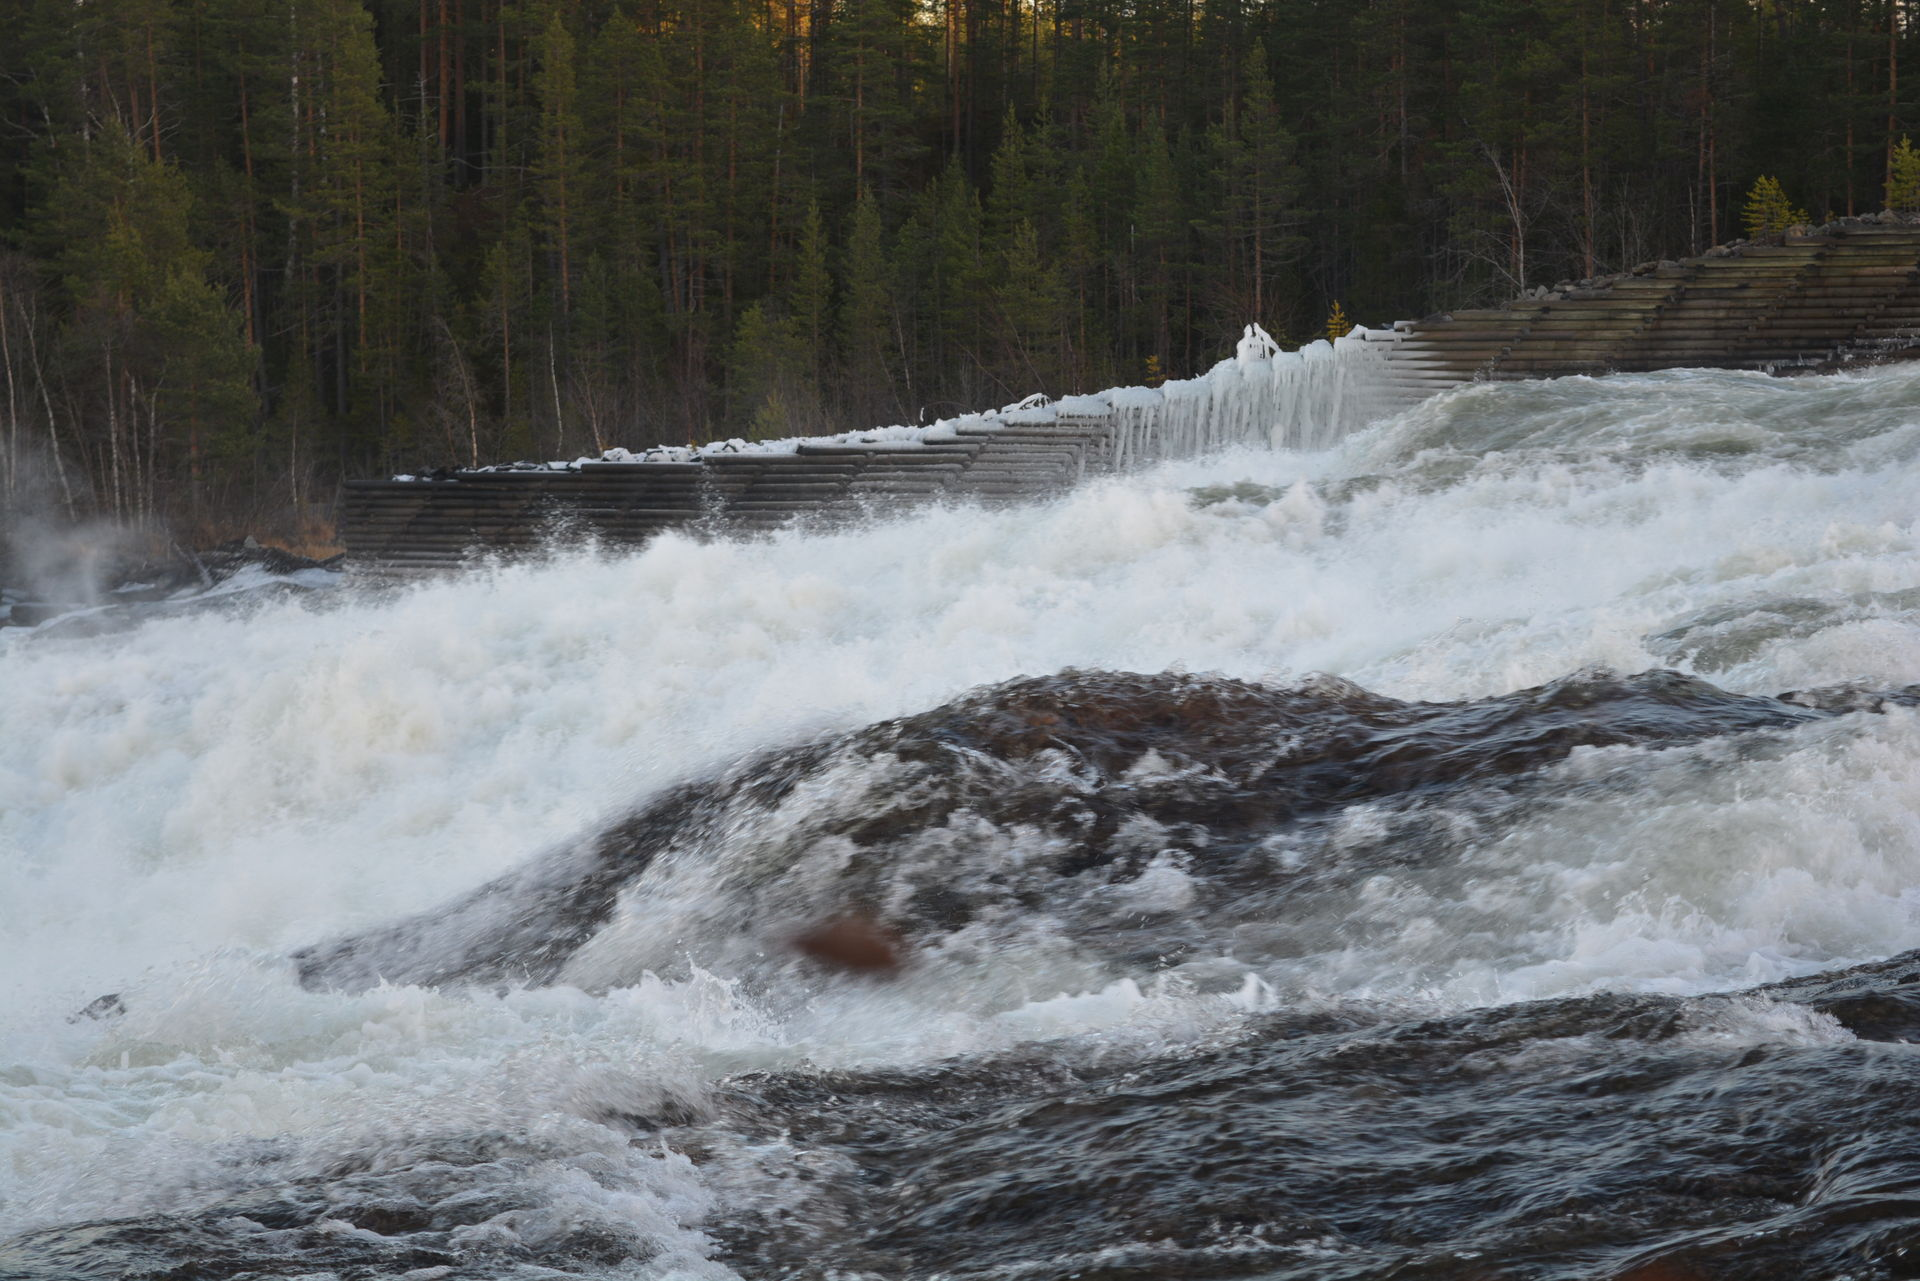 One of Europes biggest rapids.